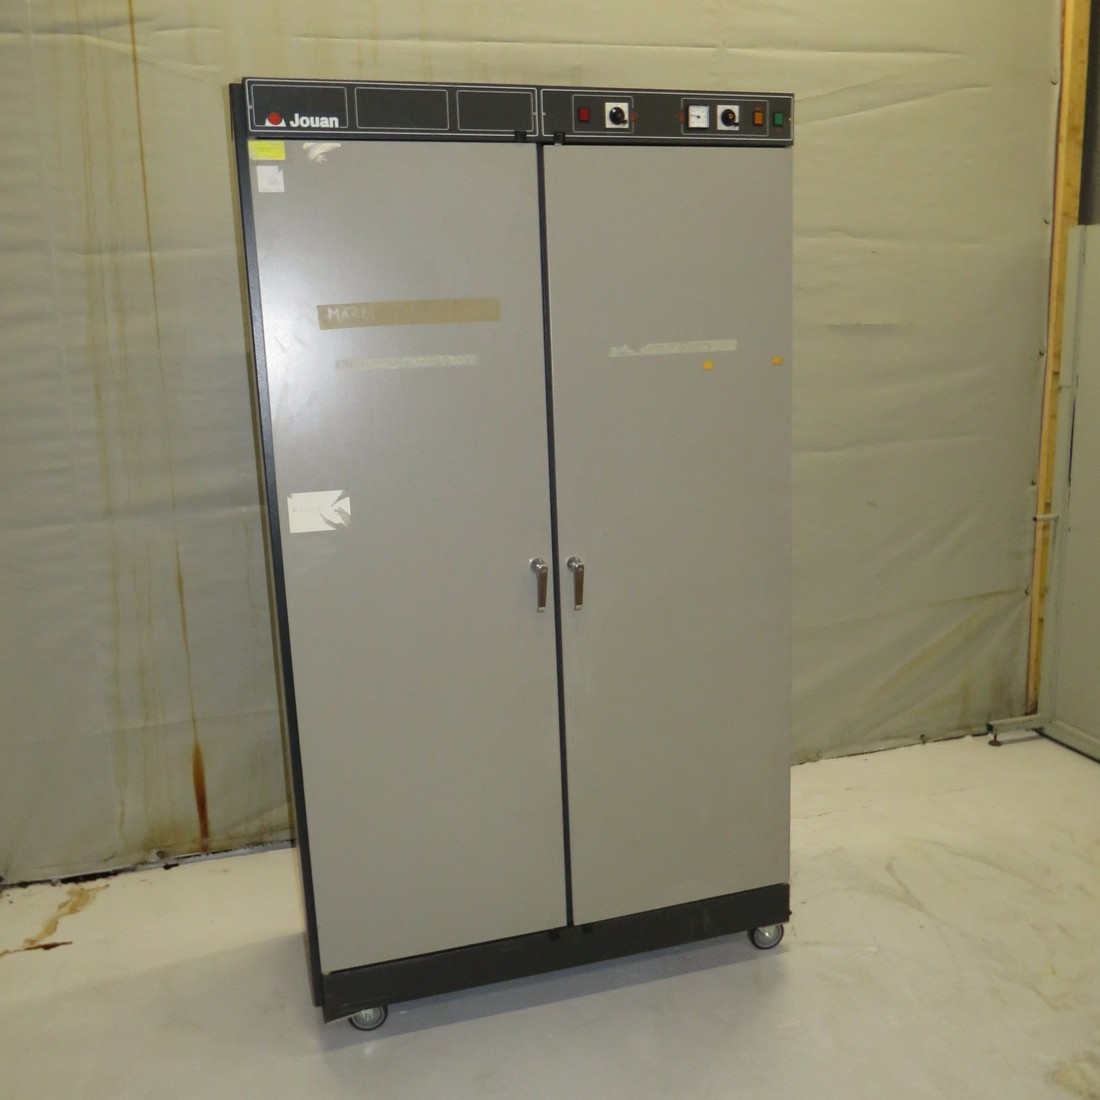 R1L1141 JOUAN electric oven EB1000 type - 1000 litres - 1350 W